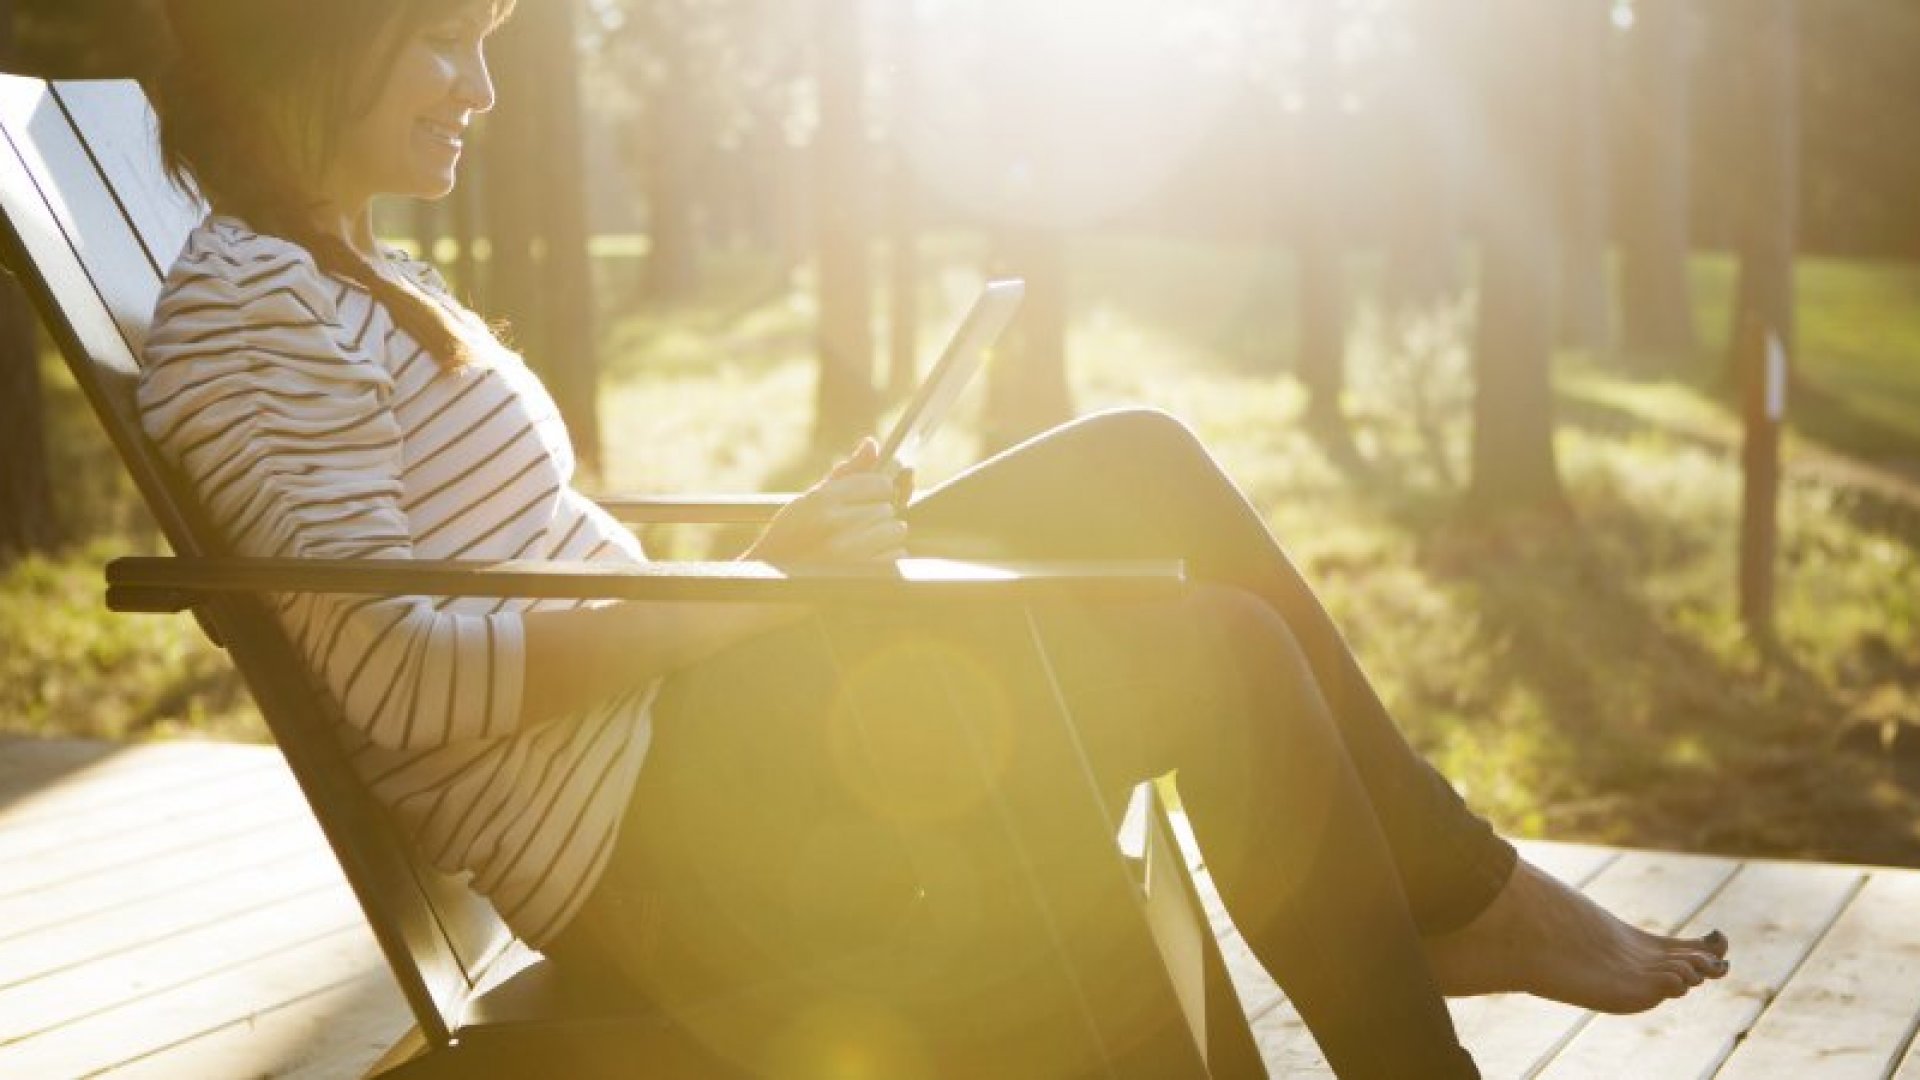 7 Traits You Need If You Want to Work From Home